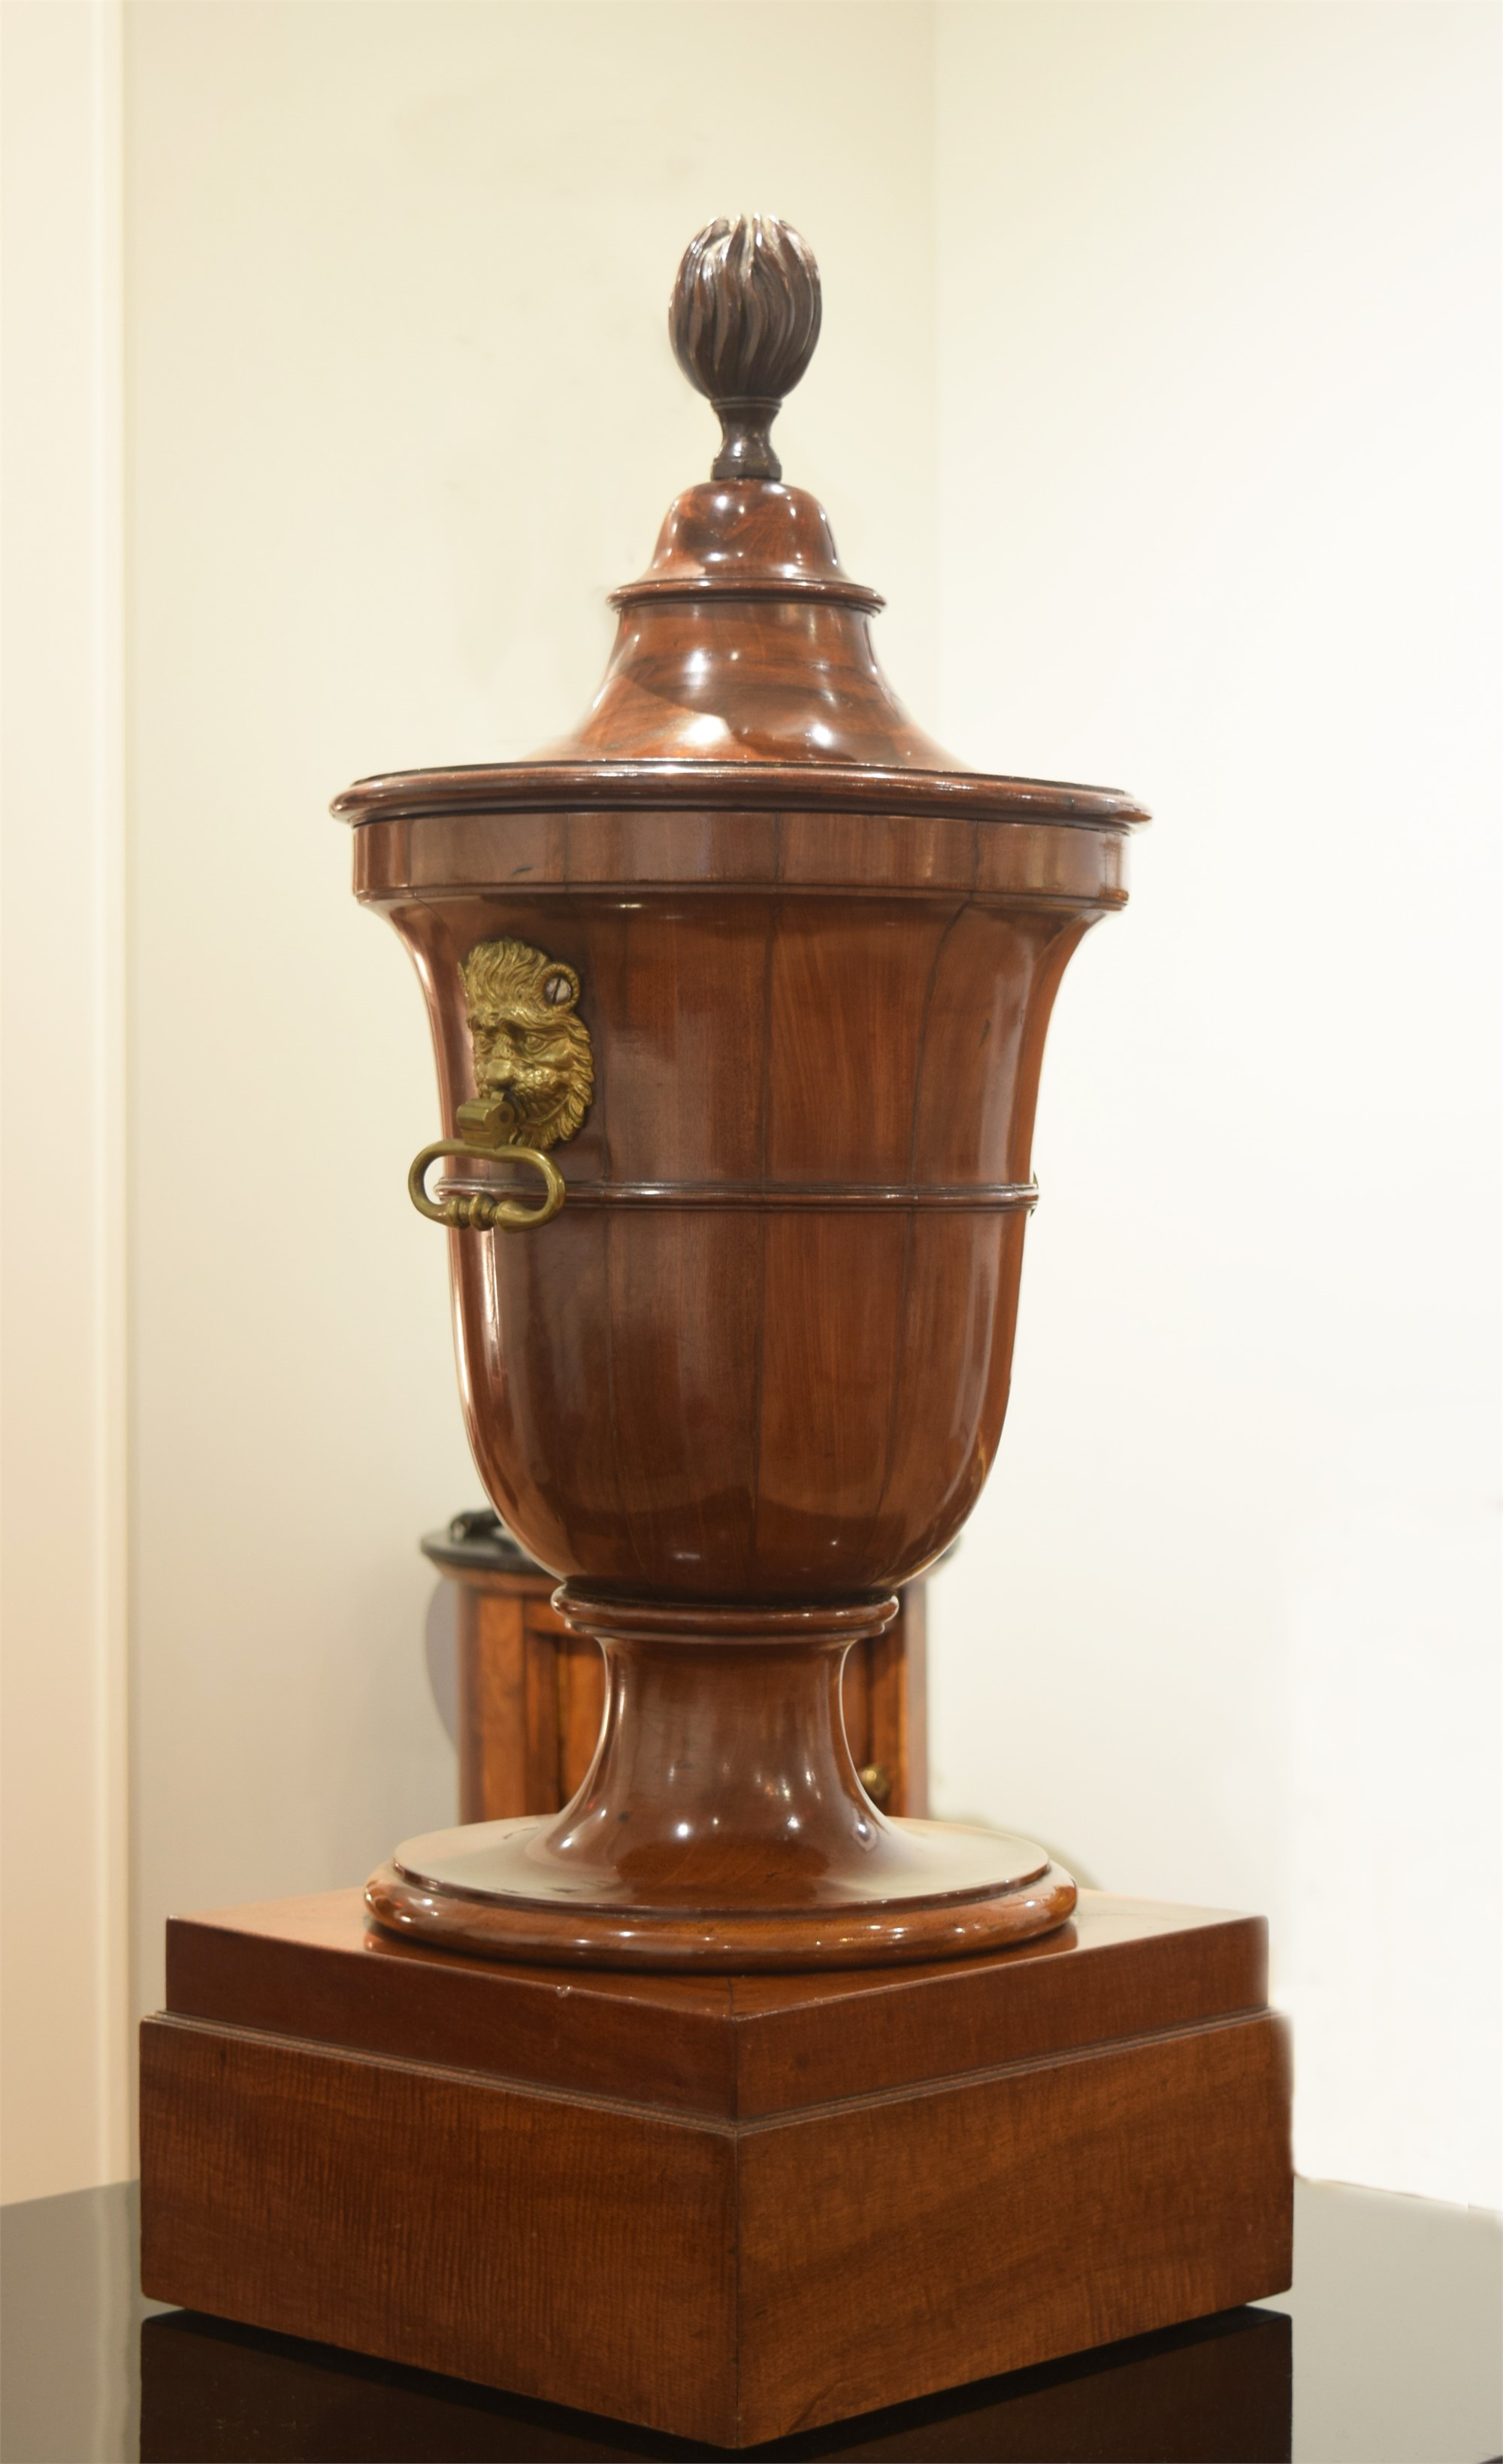 GEORGE III BRASS-MOUNTED CARVED MAHOGANY URN-FORM CELLARETTE